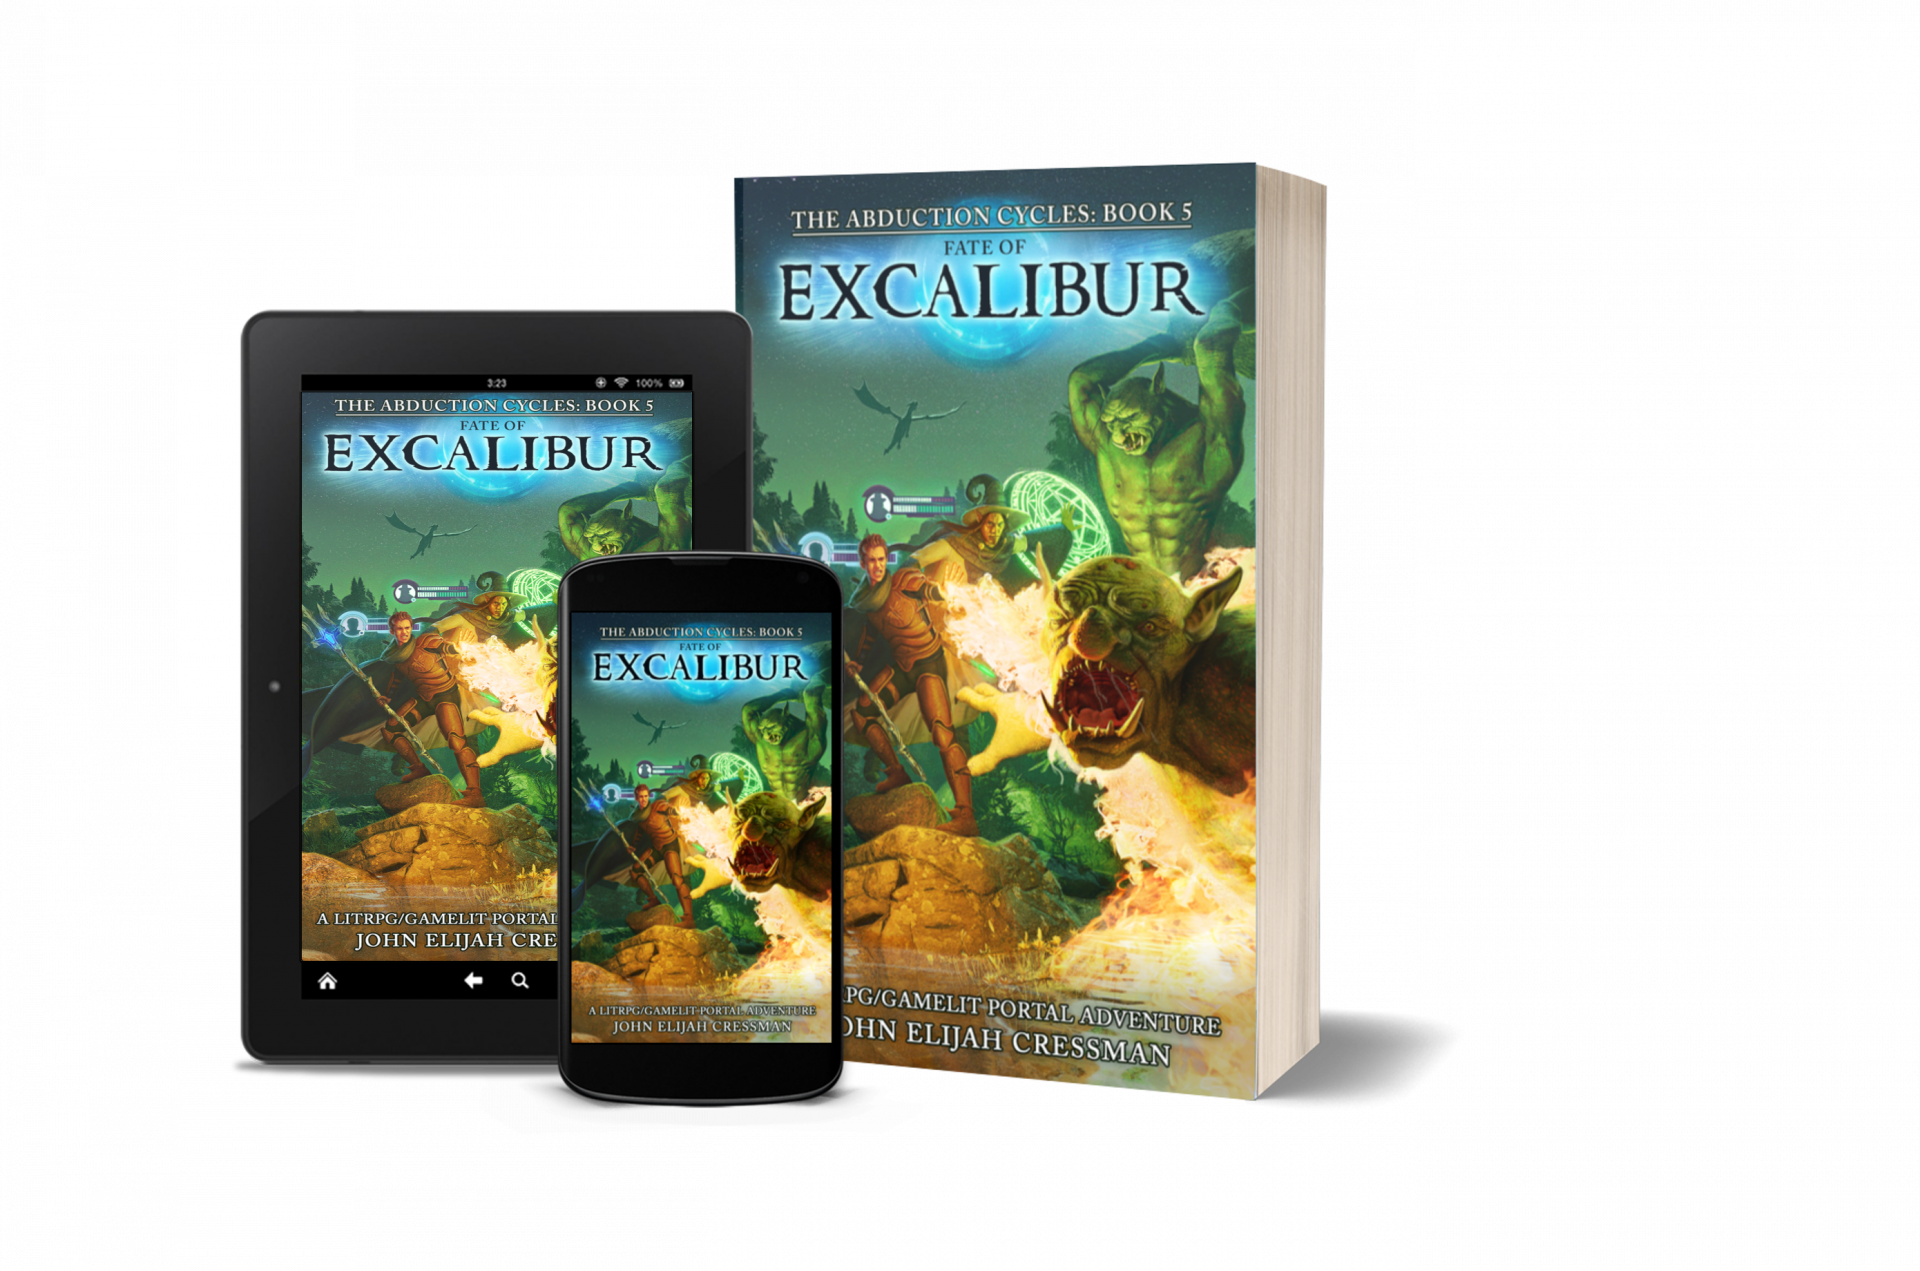 Abduction Cycles: Fate of Excalibur Summary